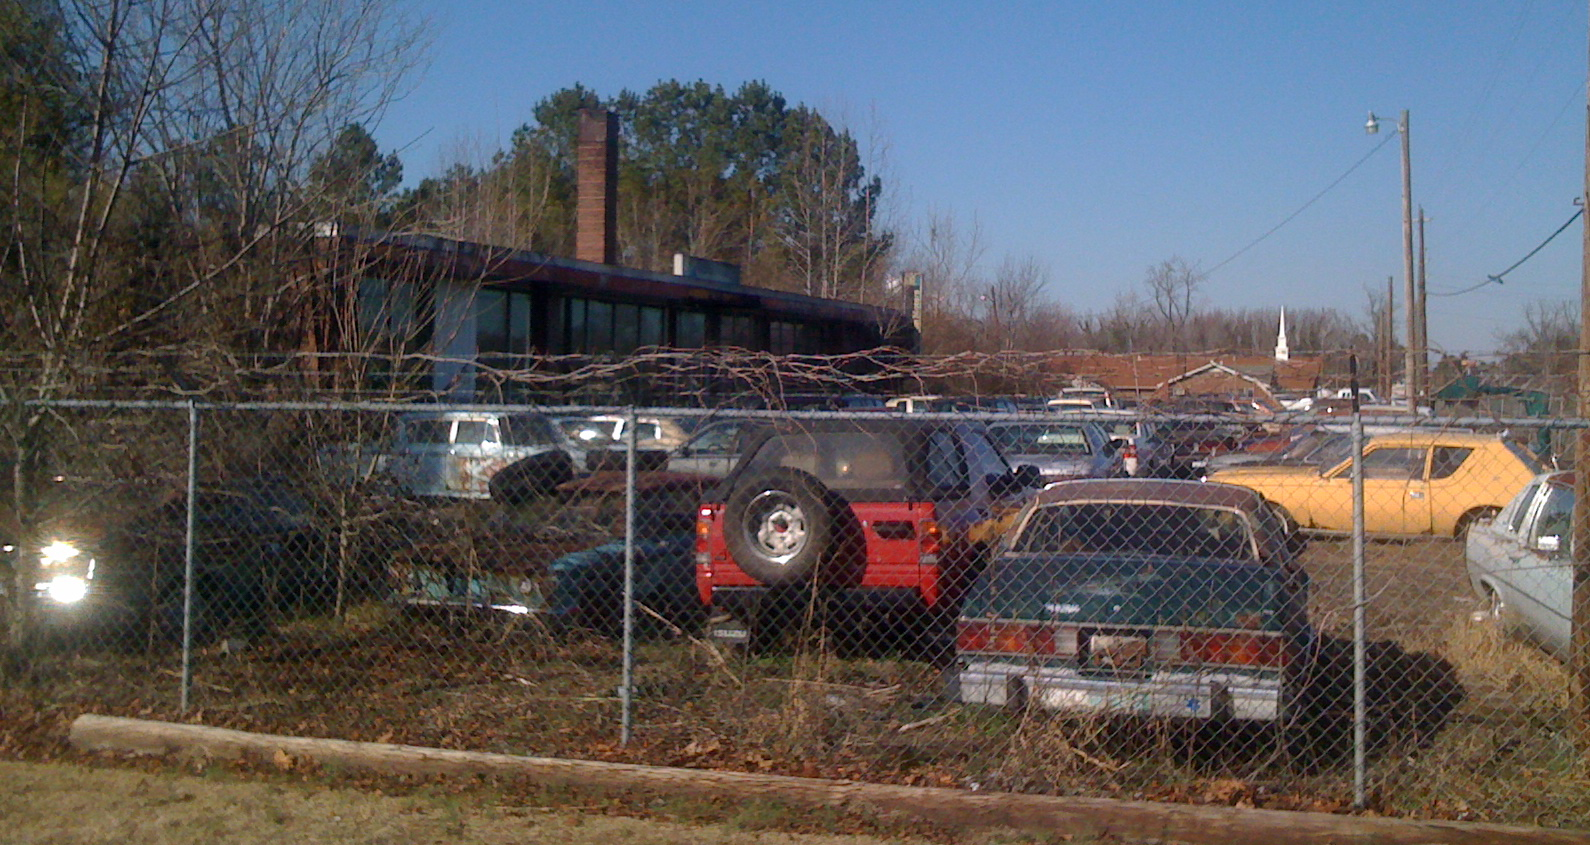 American Pickers Pikeville Nc collier motors (north carolina) - wikimedia commons